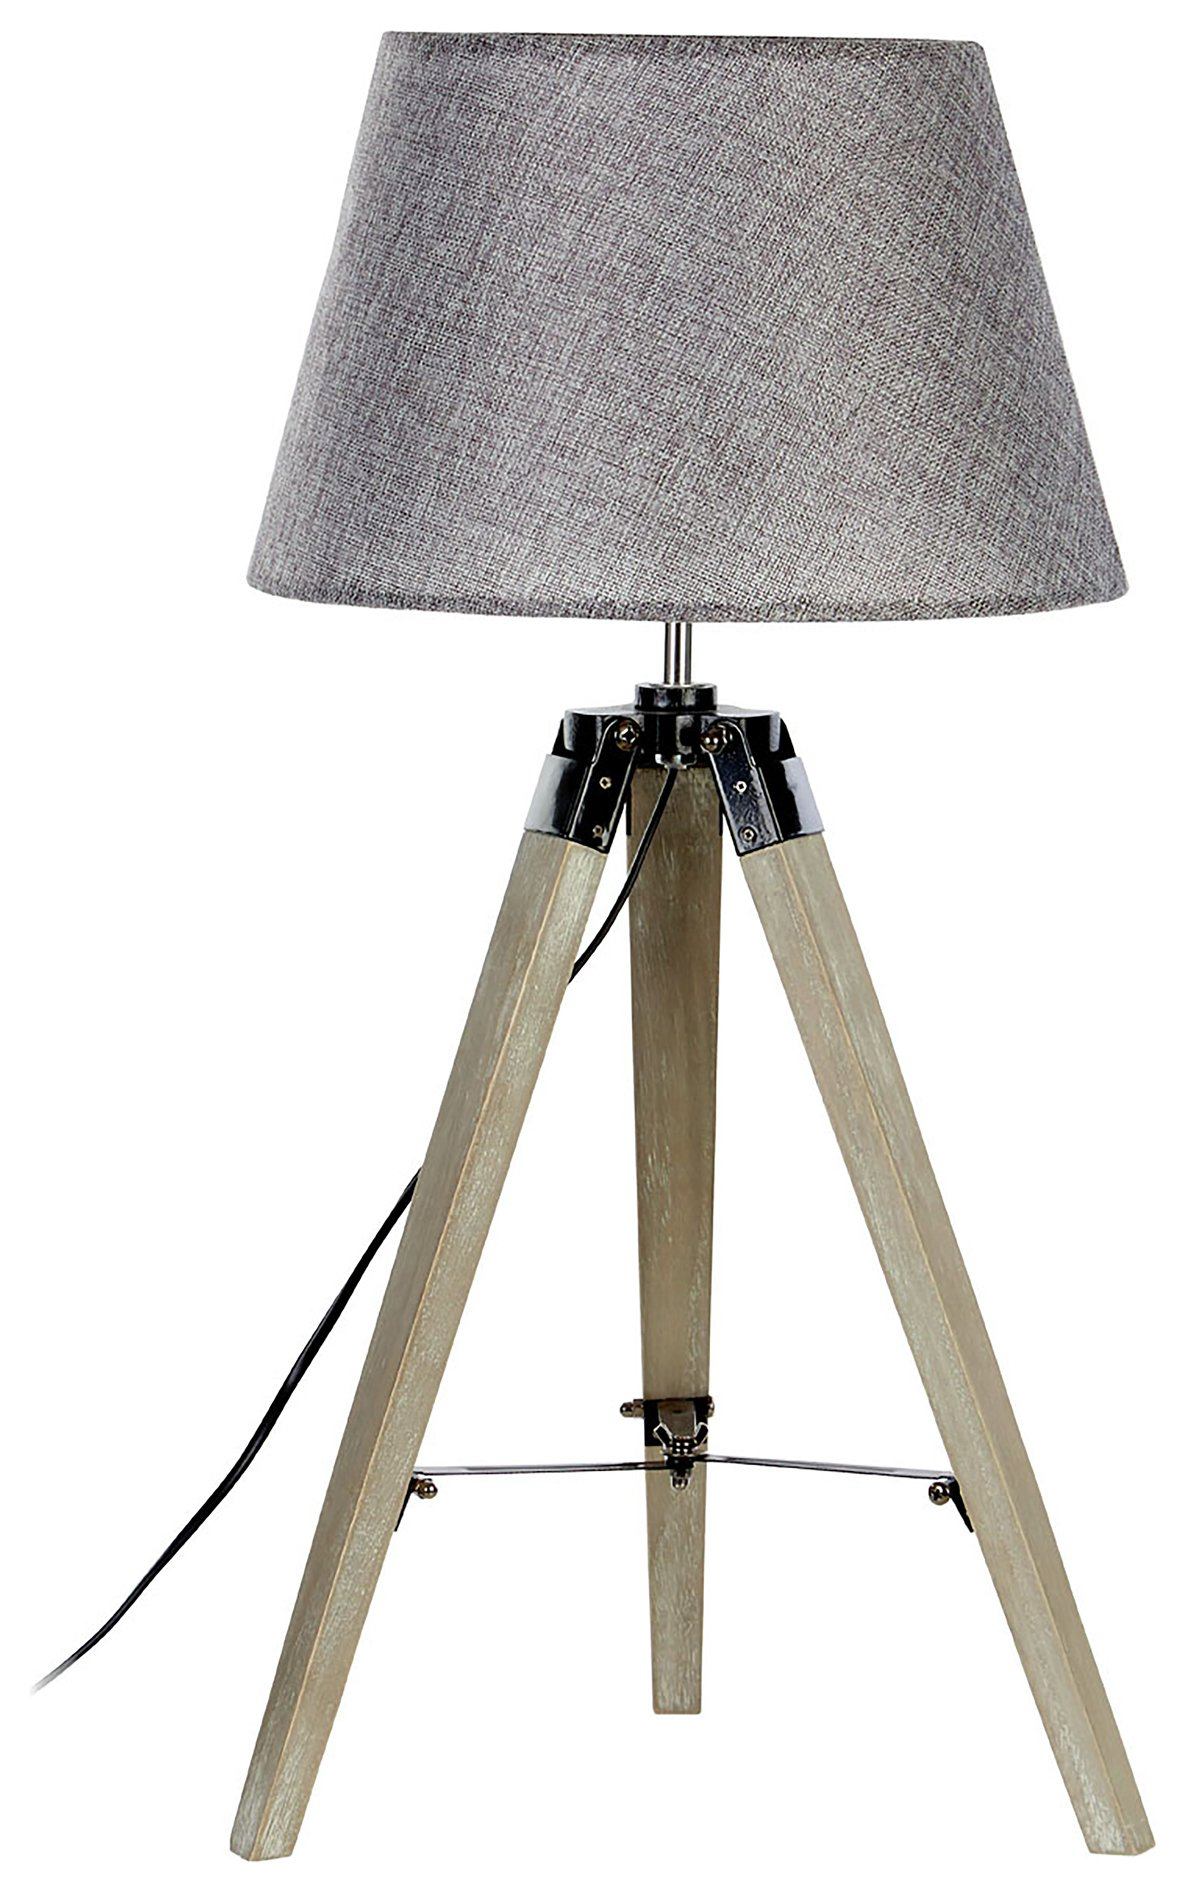 Grey Wood Table Lamp Base Best Inspiration for Table Lamp